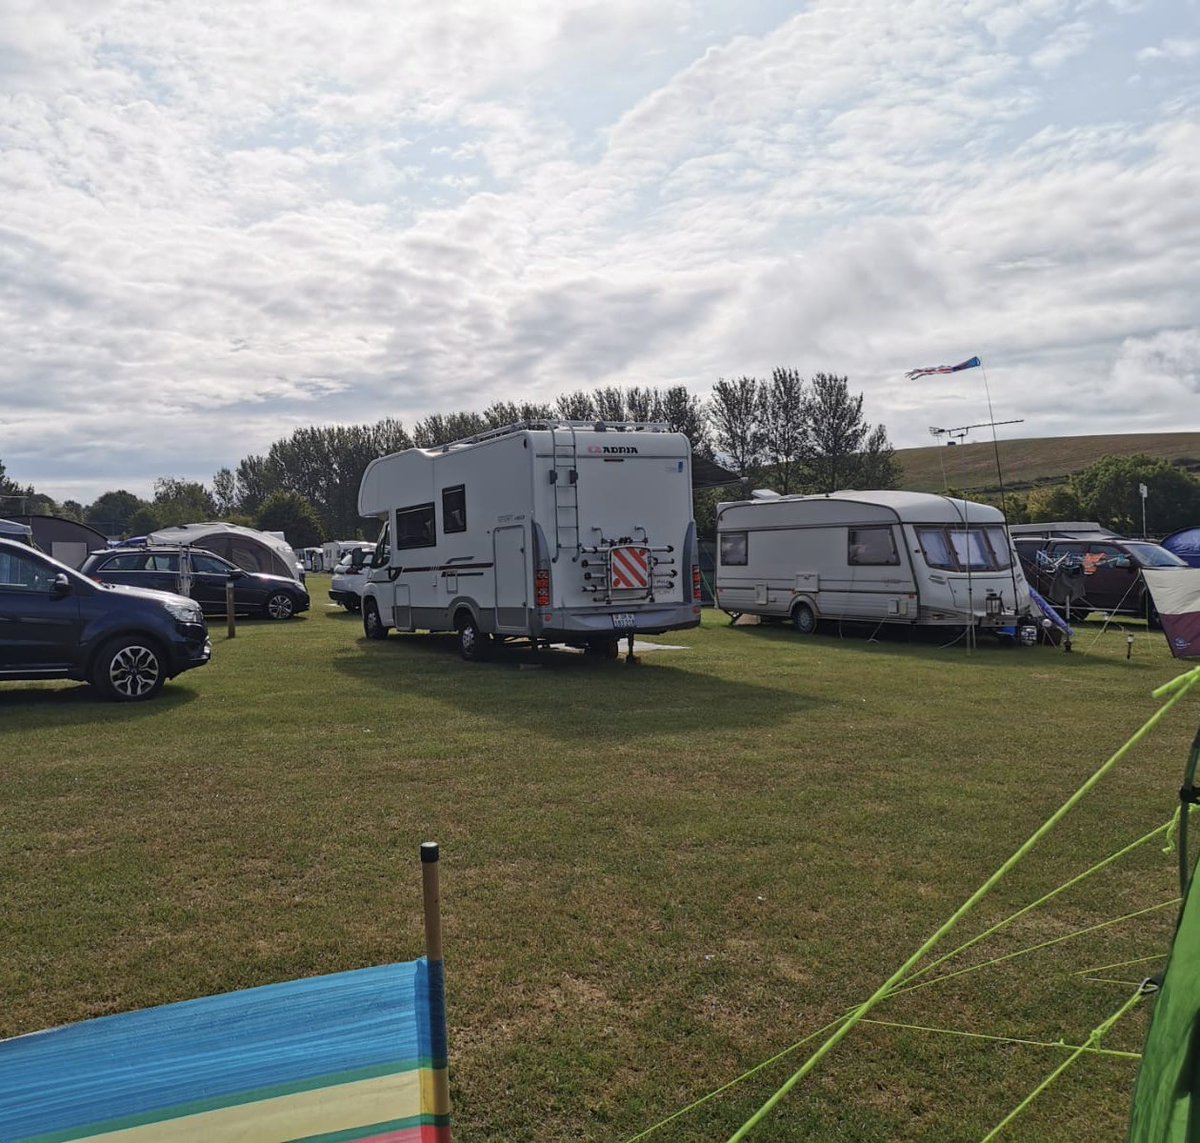 What did you do this weekend? As its getting closer to winter its important to make the most of the of the weather!☀️  #motorhome #MondayMotivaton #MondayMorning #MondayBlues #adventure #campervan #camping #caravan #camper #travel #travelling #photography #photooftheday